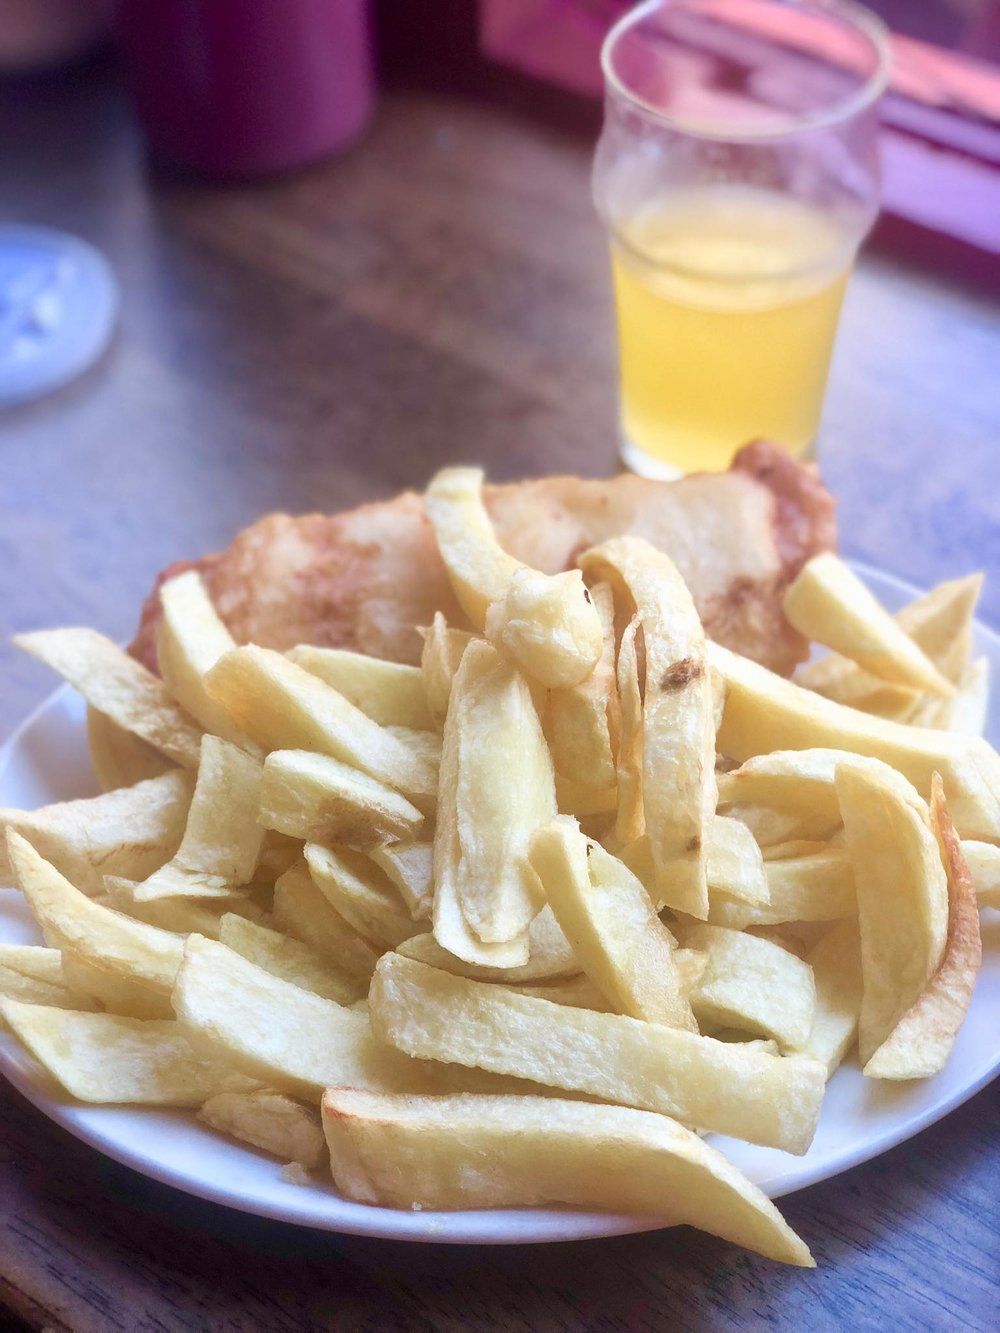 - Left, a regular, good old cod fish and chips combo courtesy of my more sensible friend. Batter was light and crisp, fries, sorry, chips, could've been slightly crunchier. Otherwise yum.